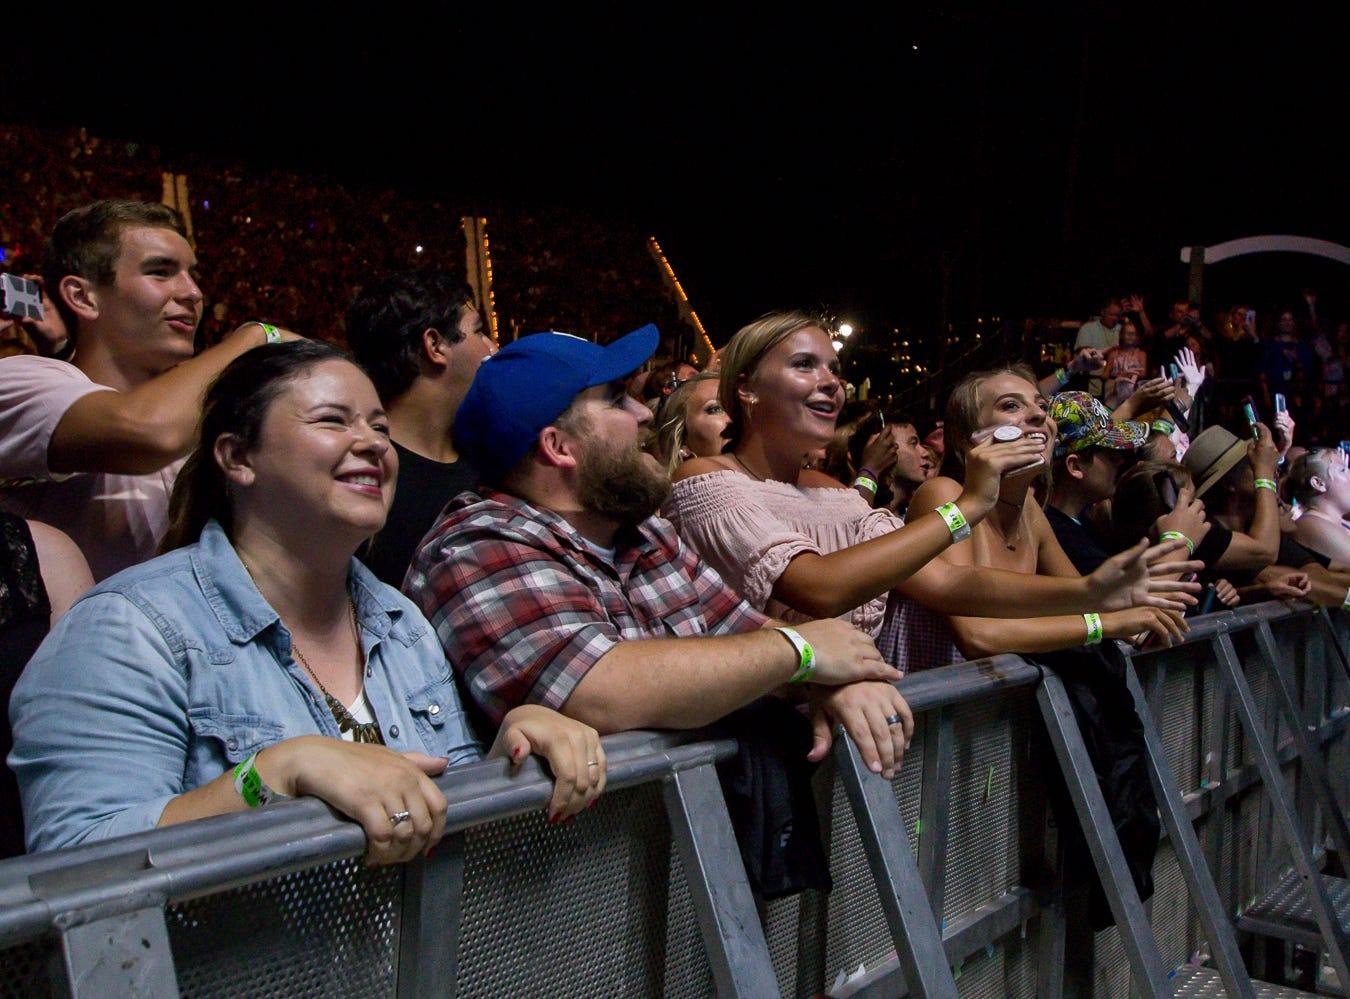 Fans enjoy Imagine Dragons' headlining performance at the Wharf Amphitheater in Orange Beach on Tuesday, August 7, 2018, during the Evolve World Tour.